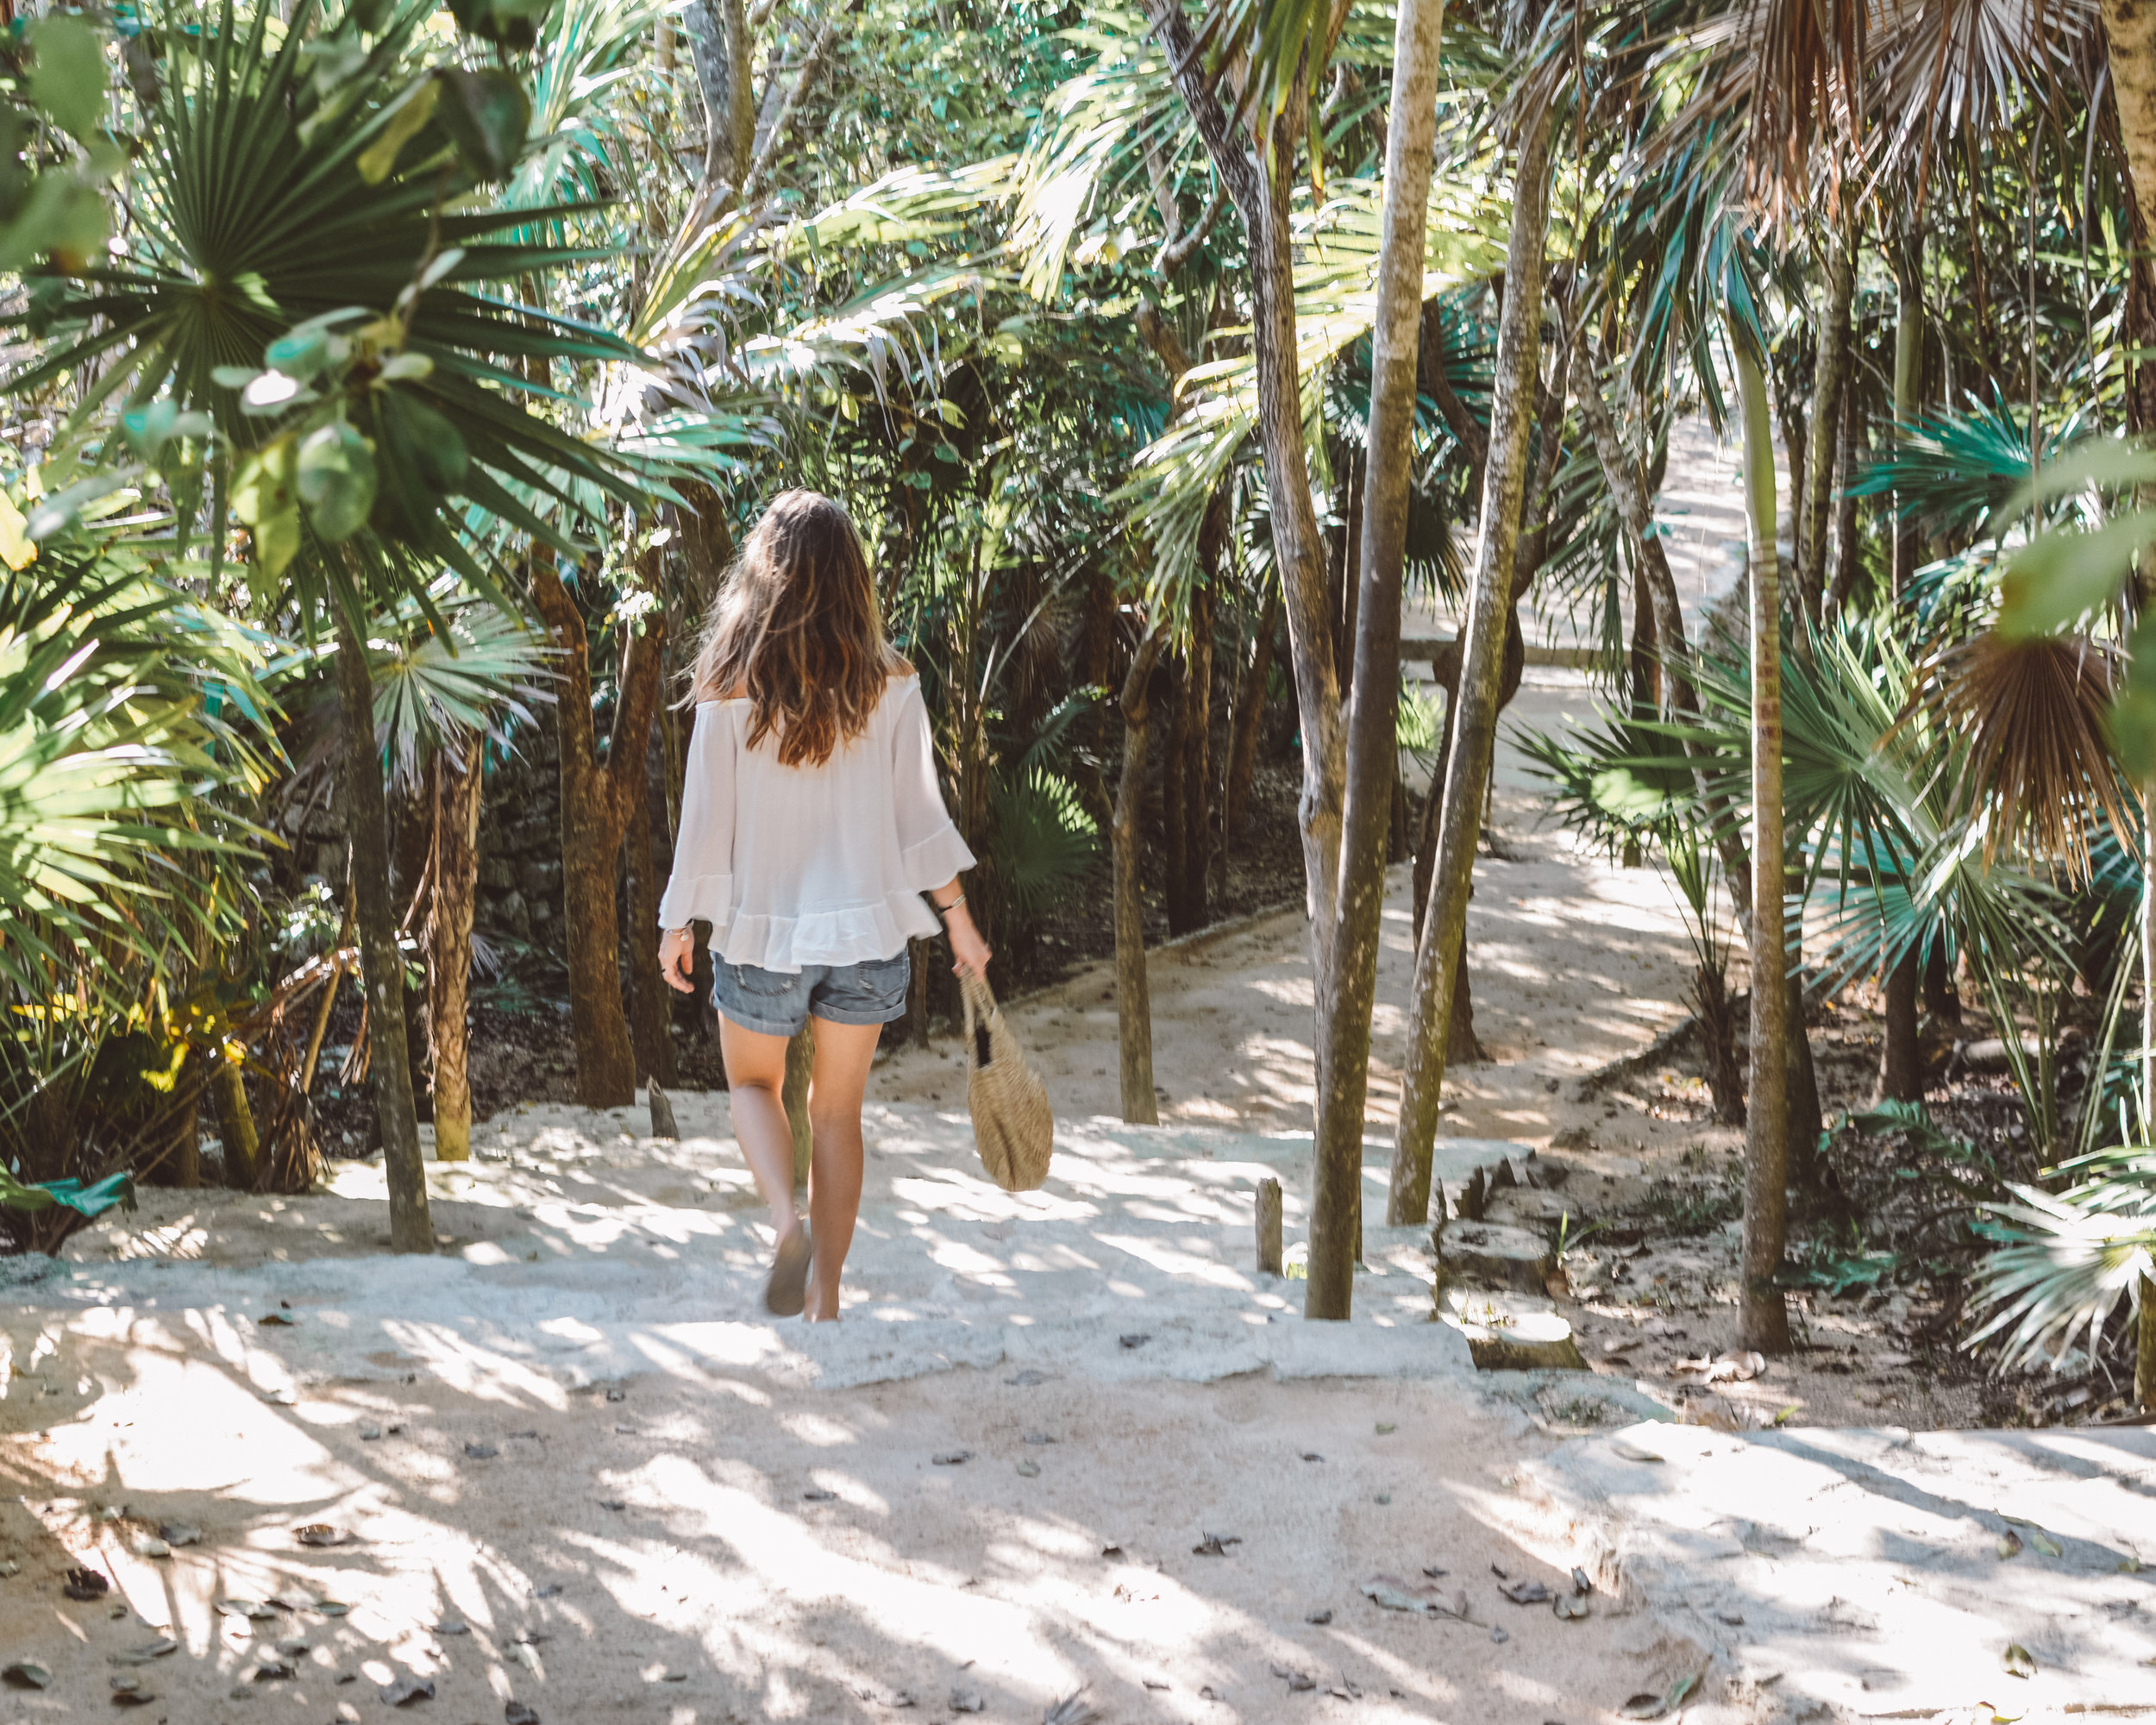 Wandering the Tulum Ruins